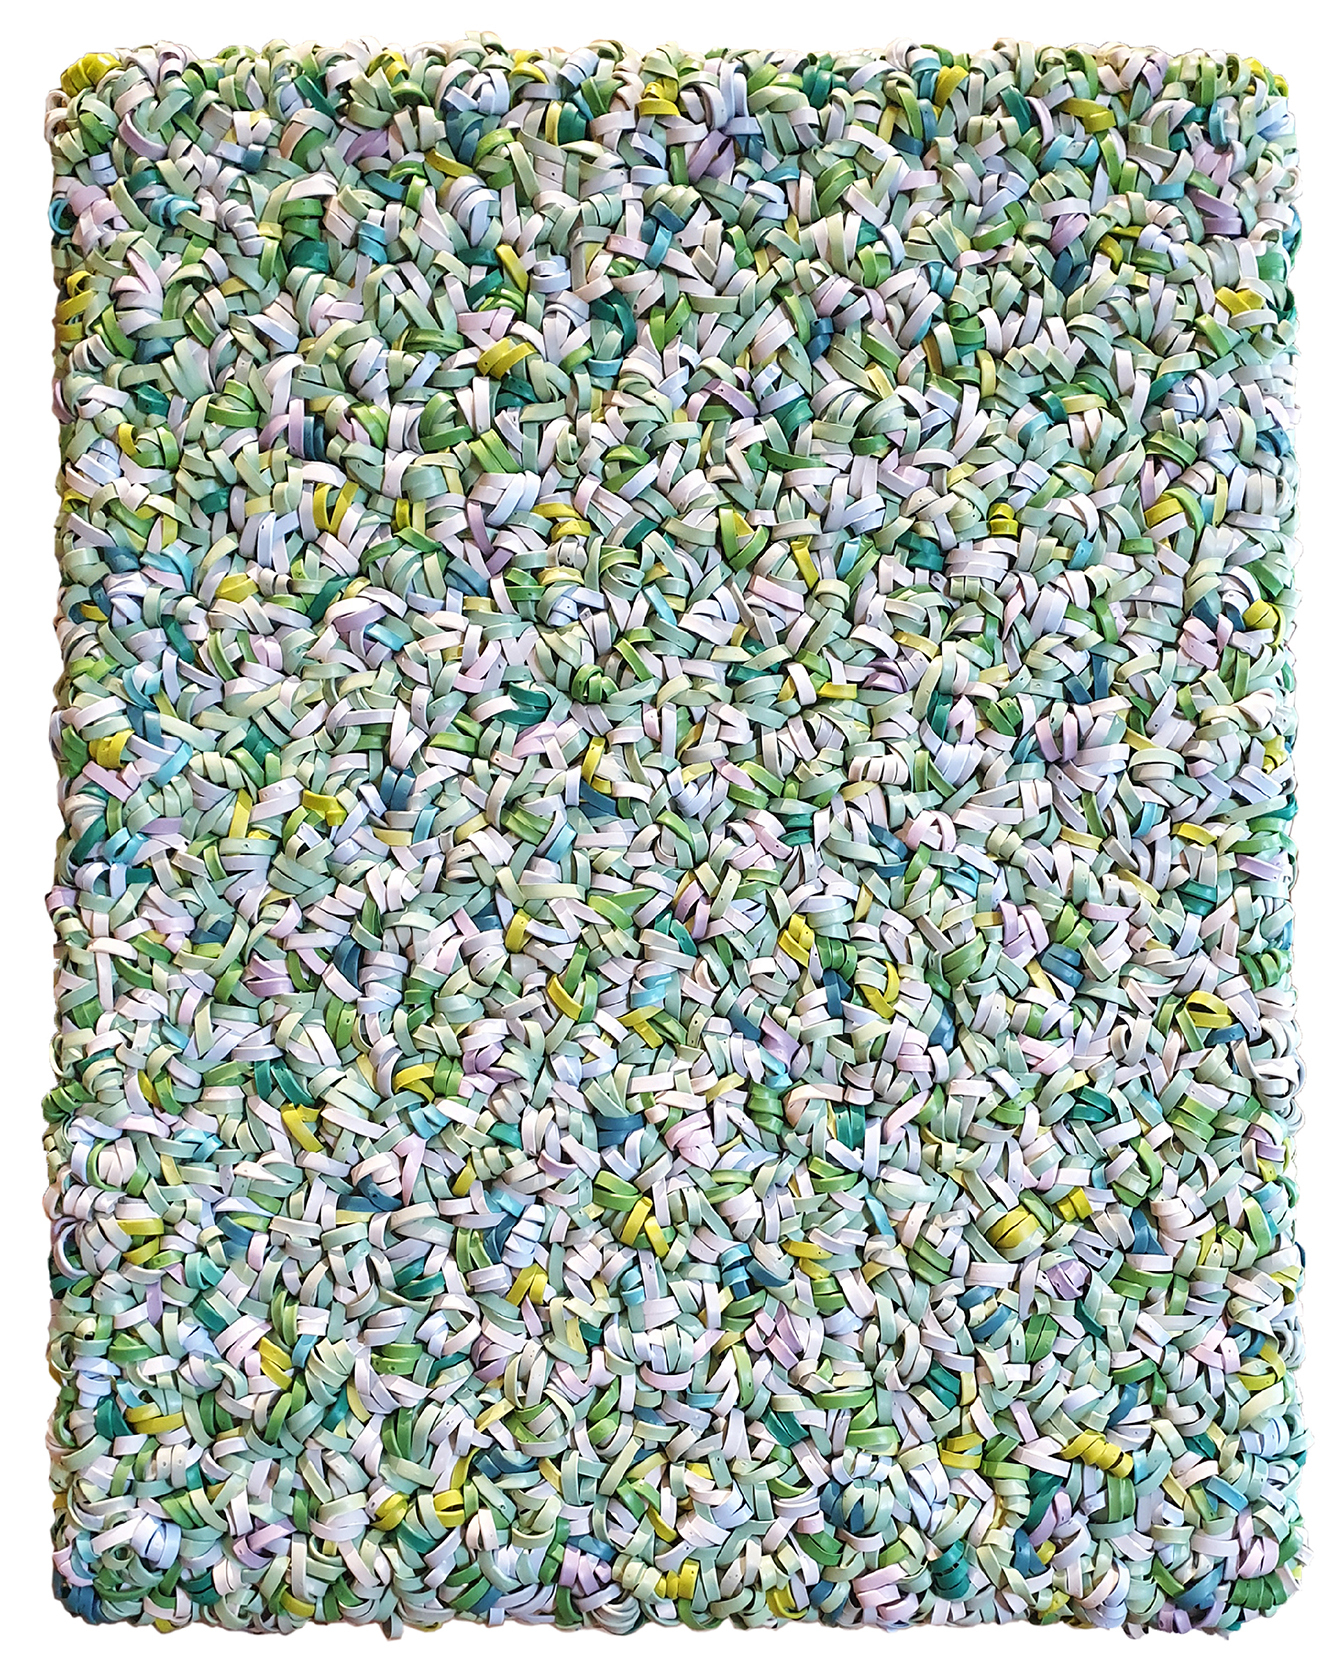 A mixed-media art piece of small, pastel twisted pieces of plastic that appear like a textile